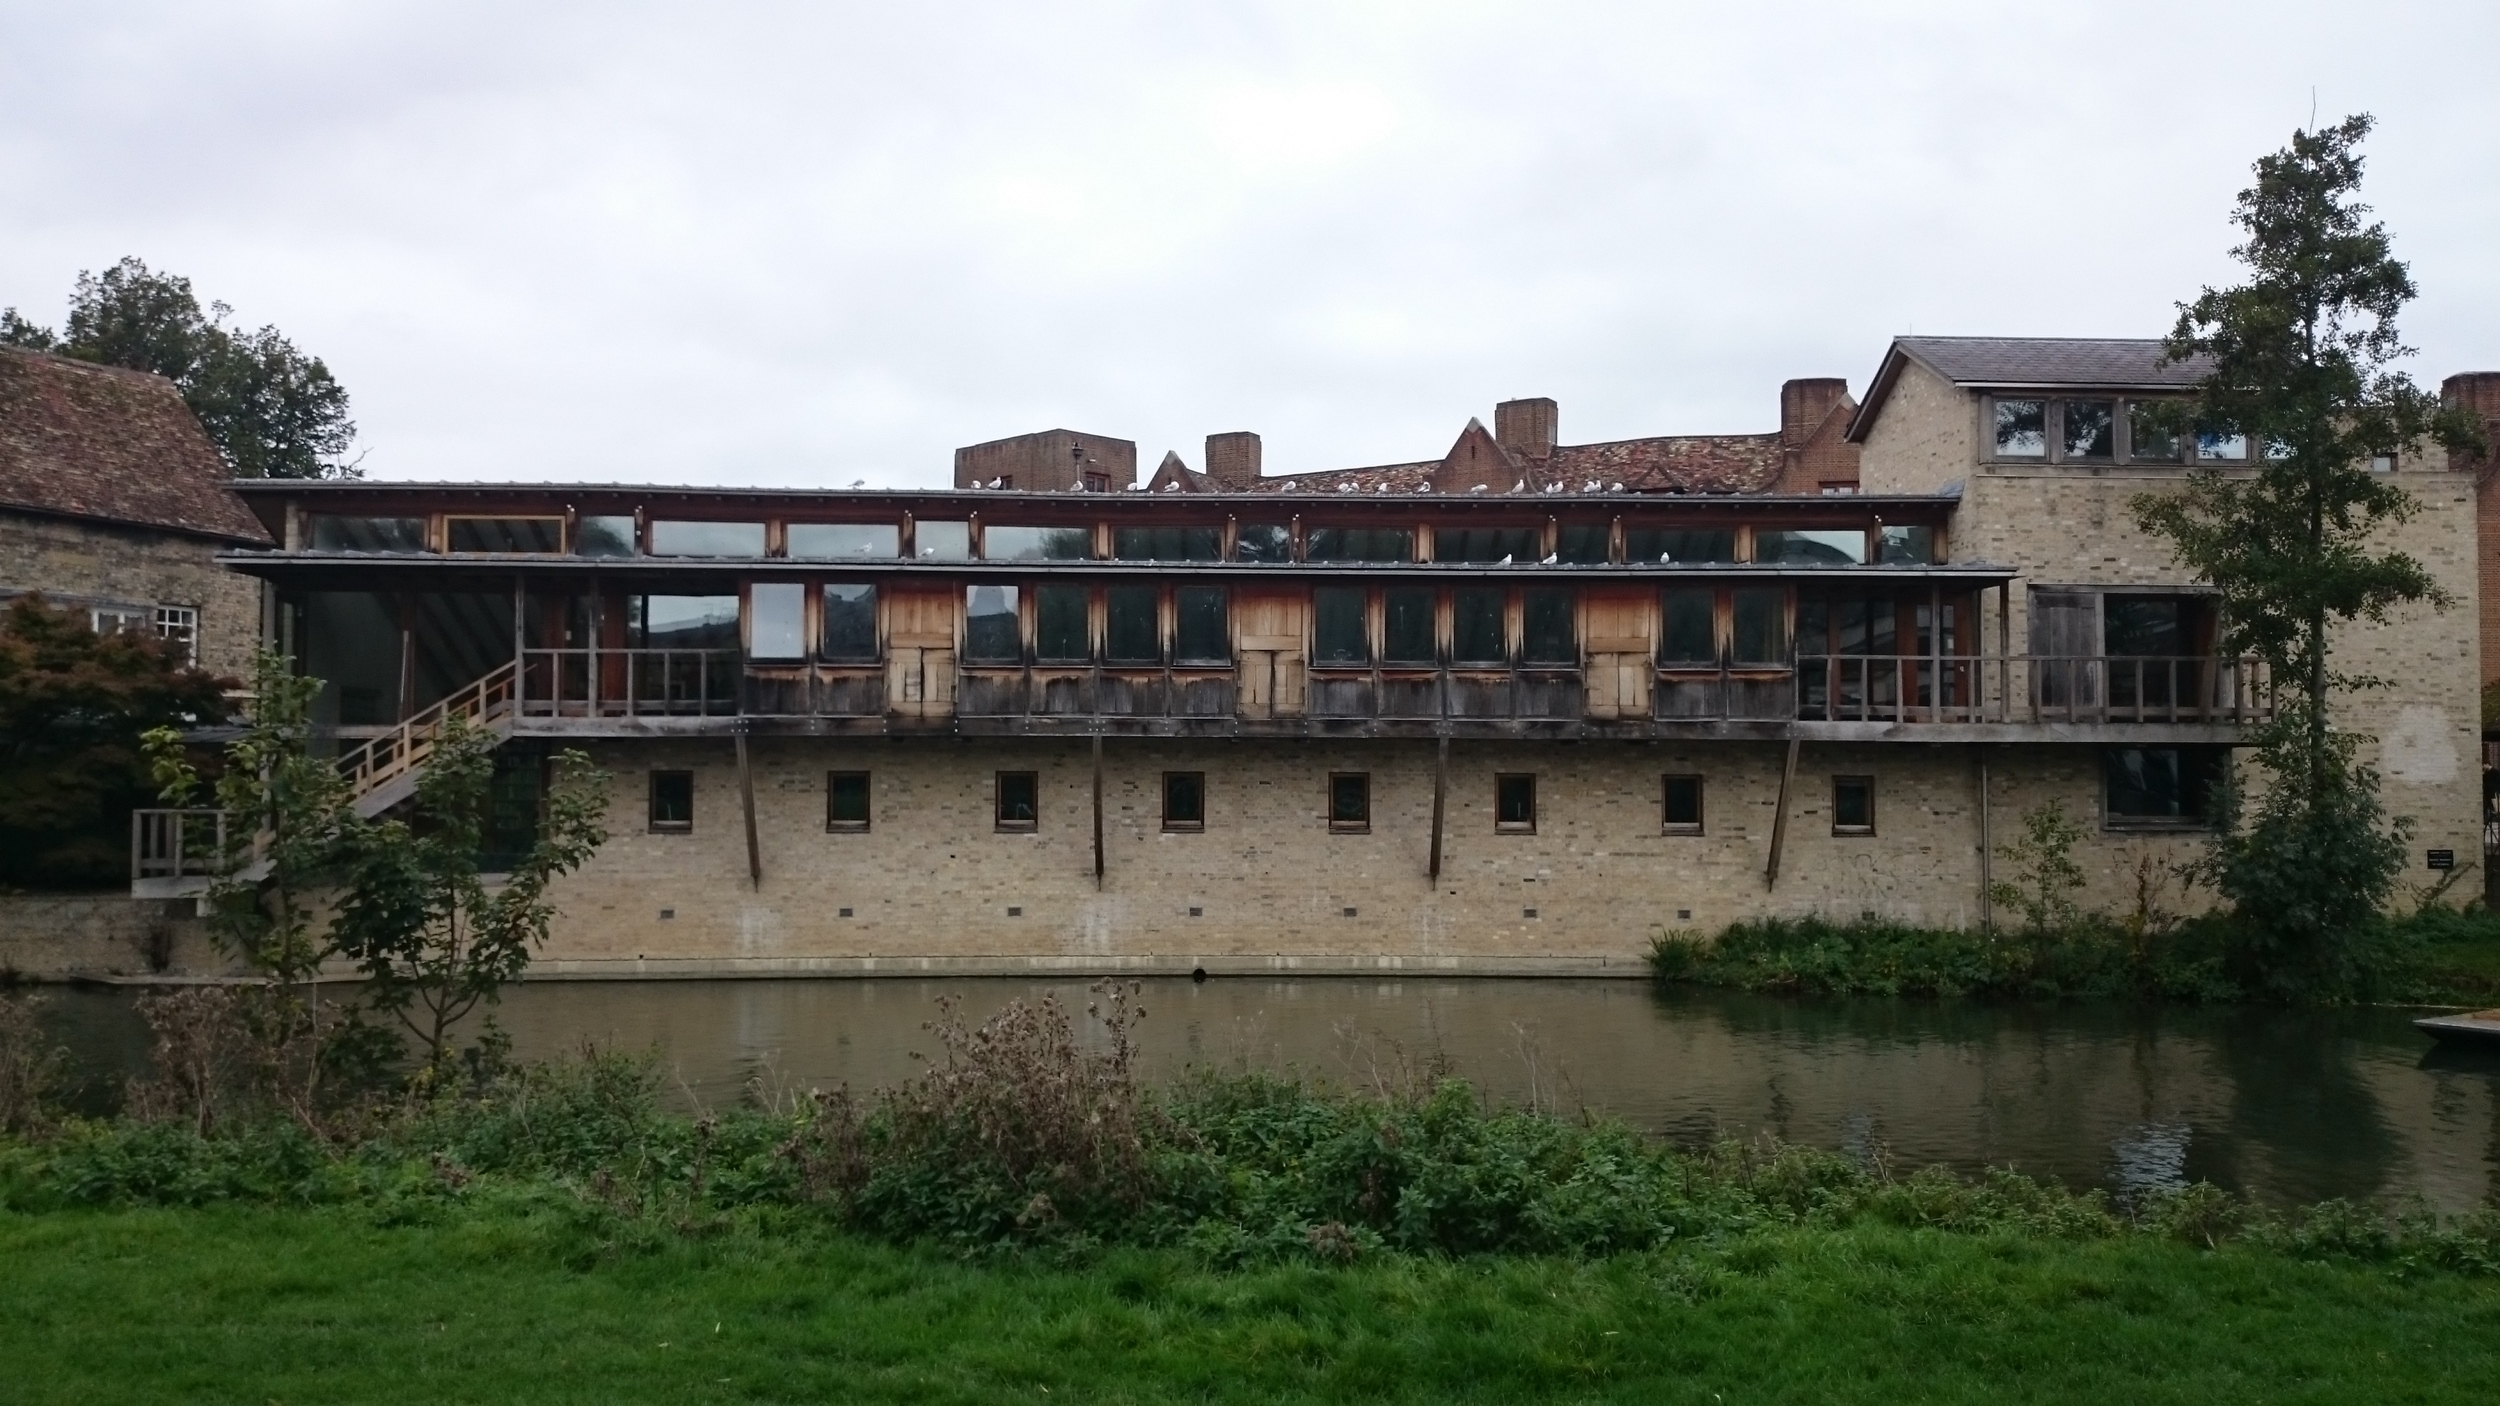 House across the river